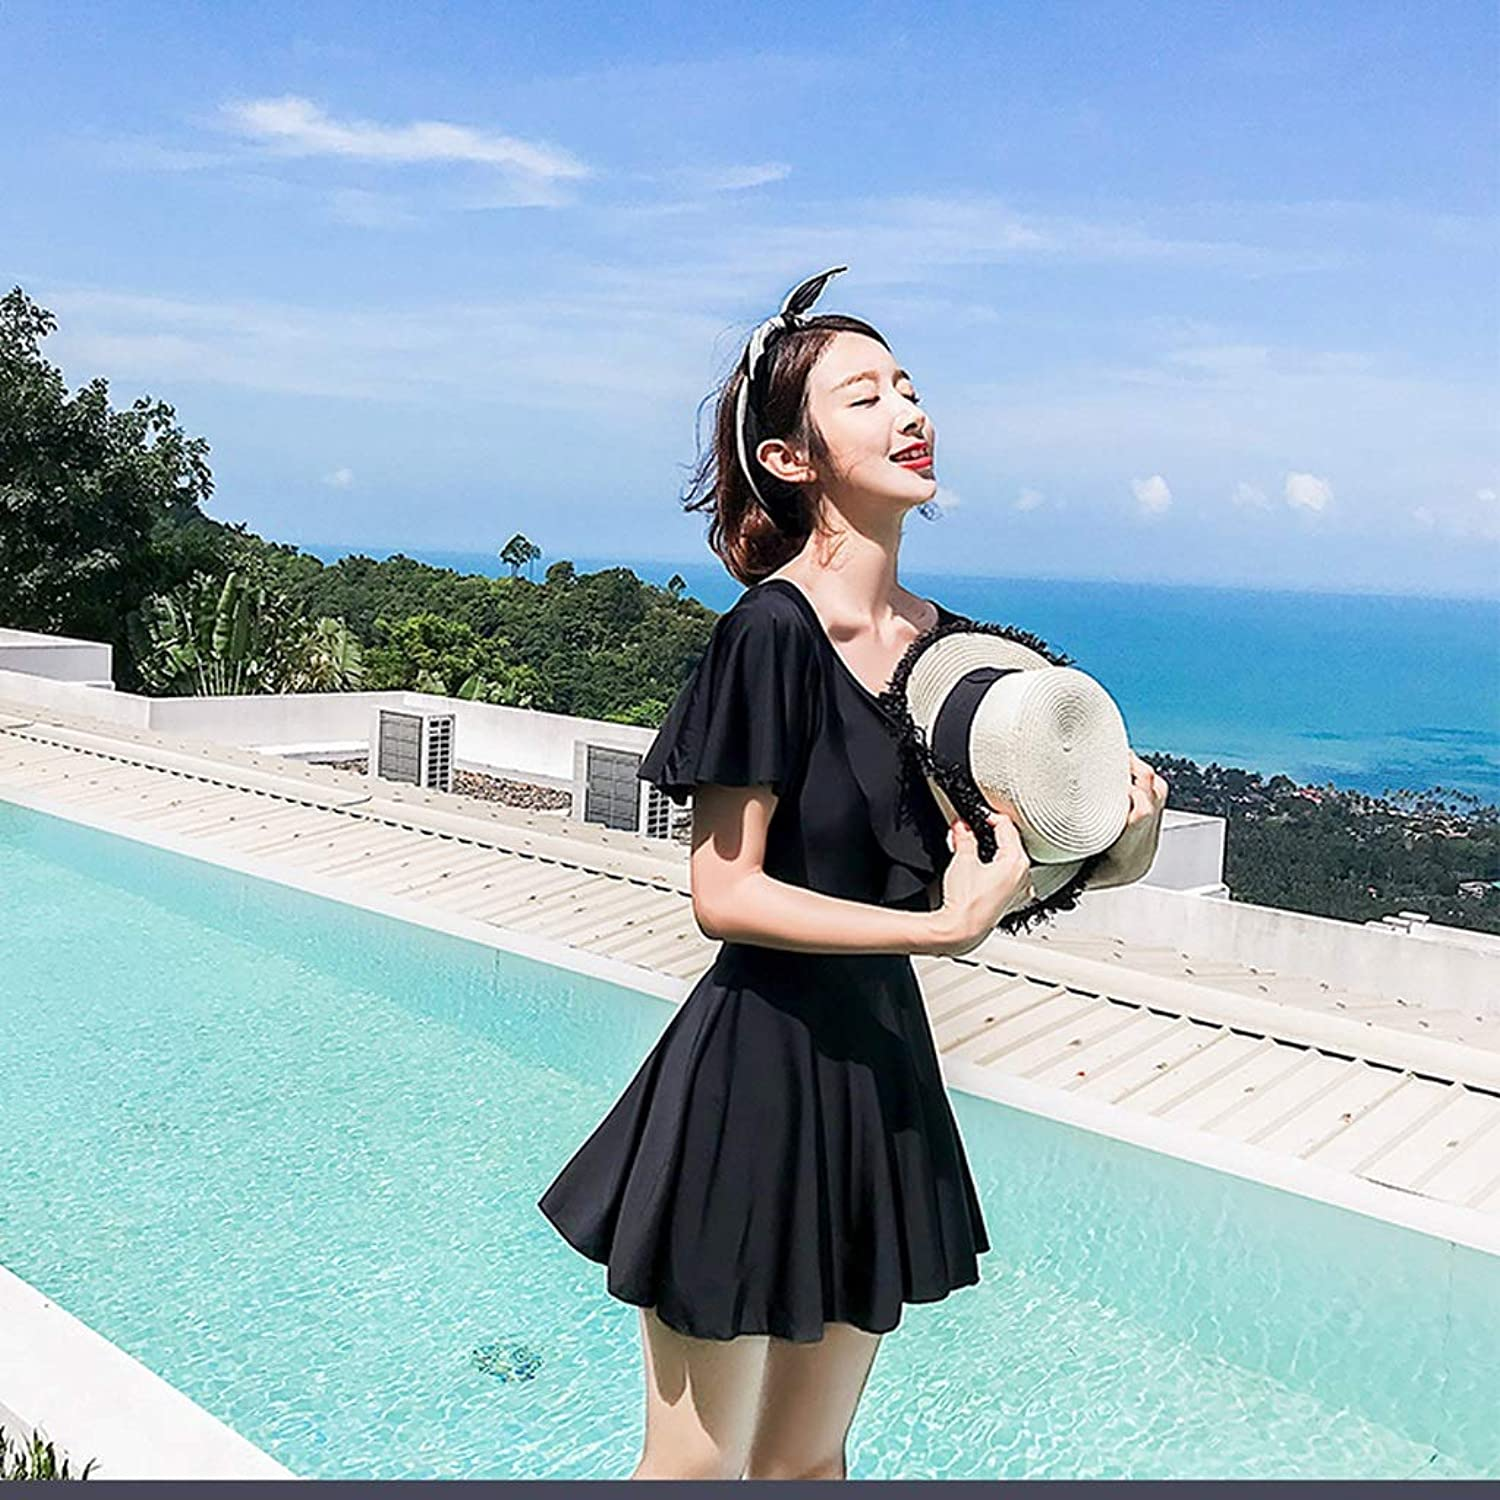 Hzpxsb Swimsuit Female Siamese Flat Angle Covered Belly was Thin Conservative Skirt Style Large Size Gathered Sexy Korean Hot Spring (Size   XL)